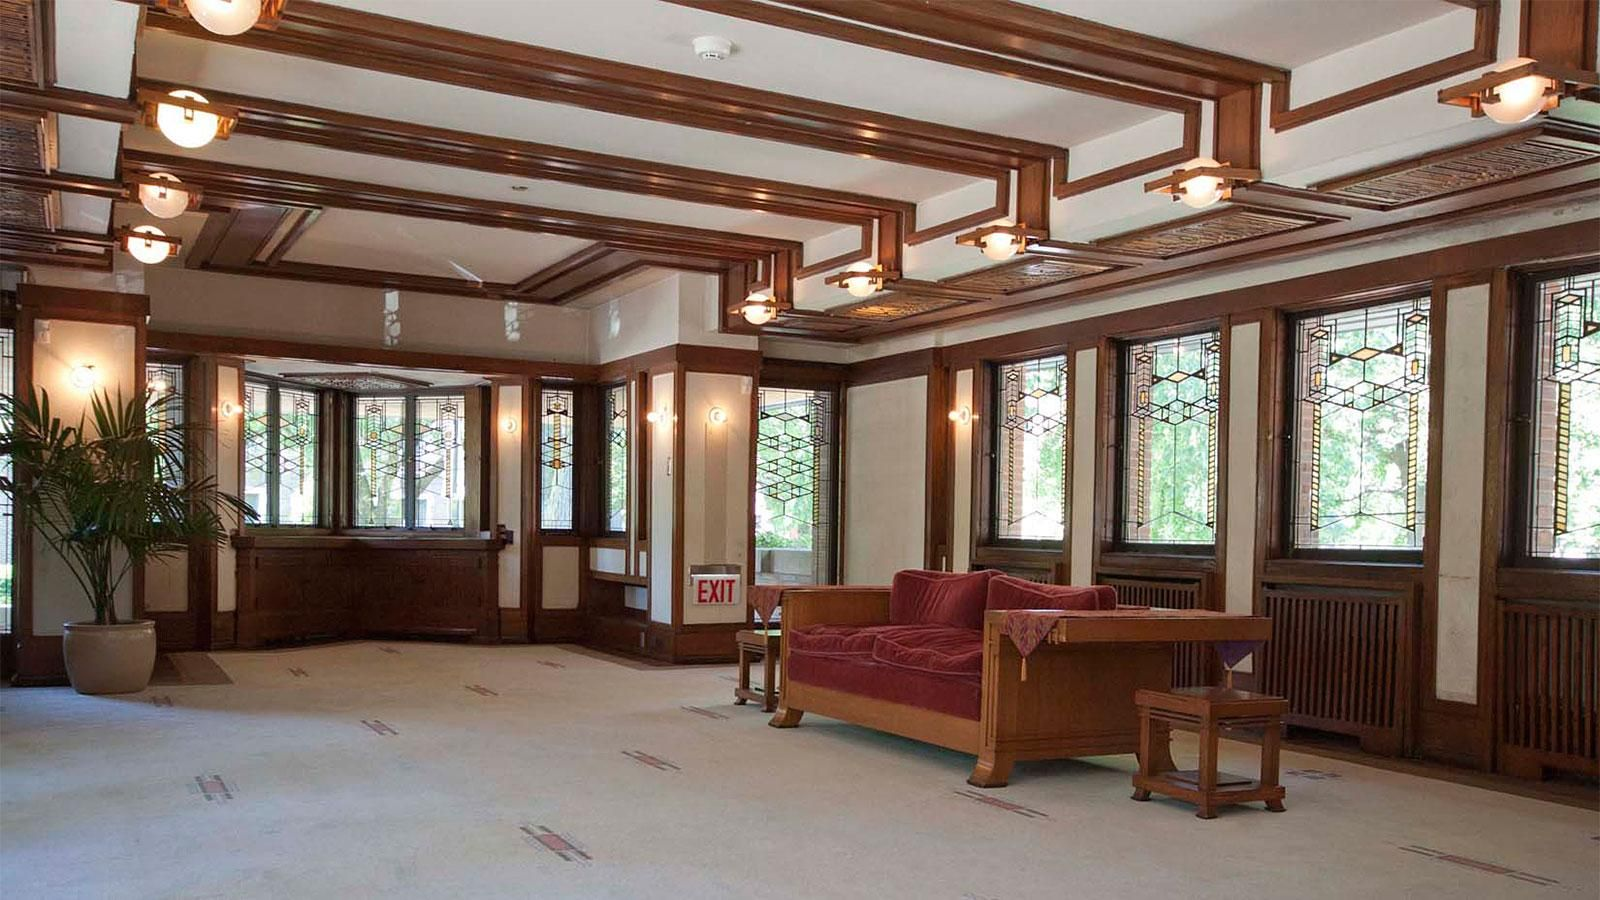 Robie House Throughout the 19th century, home design in America ...